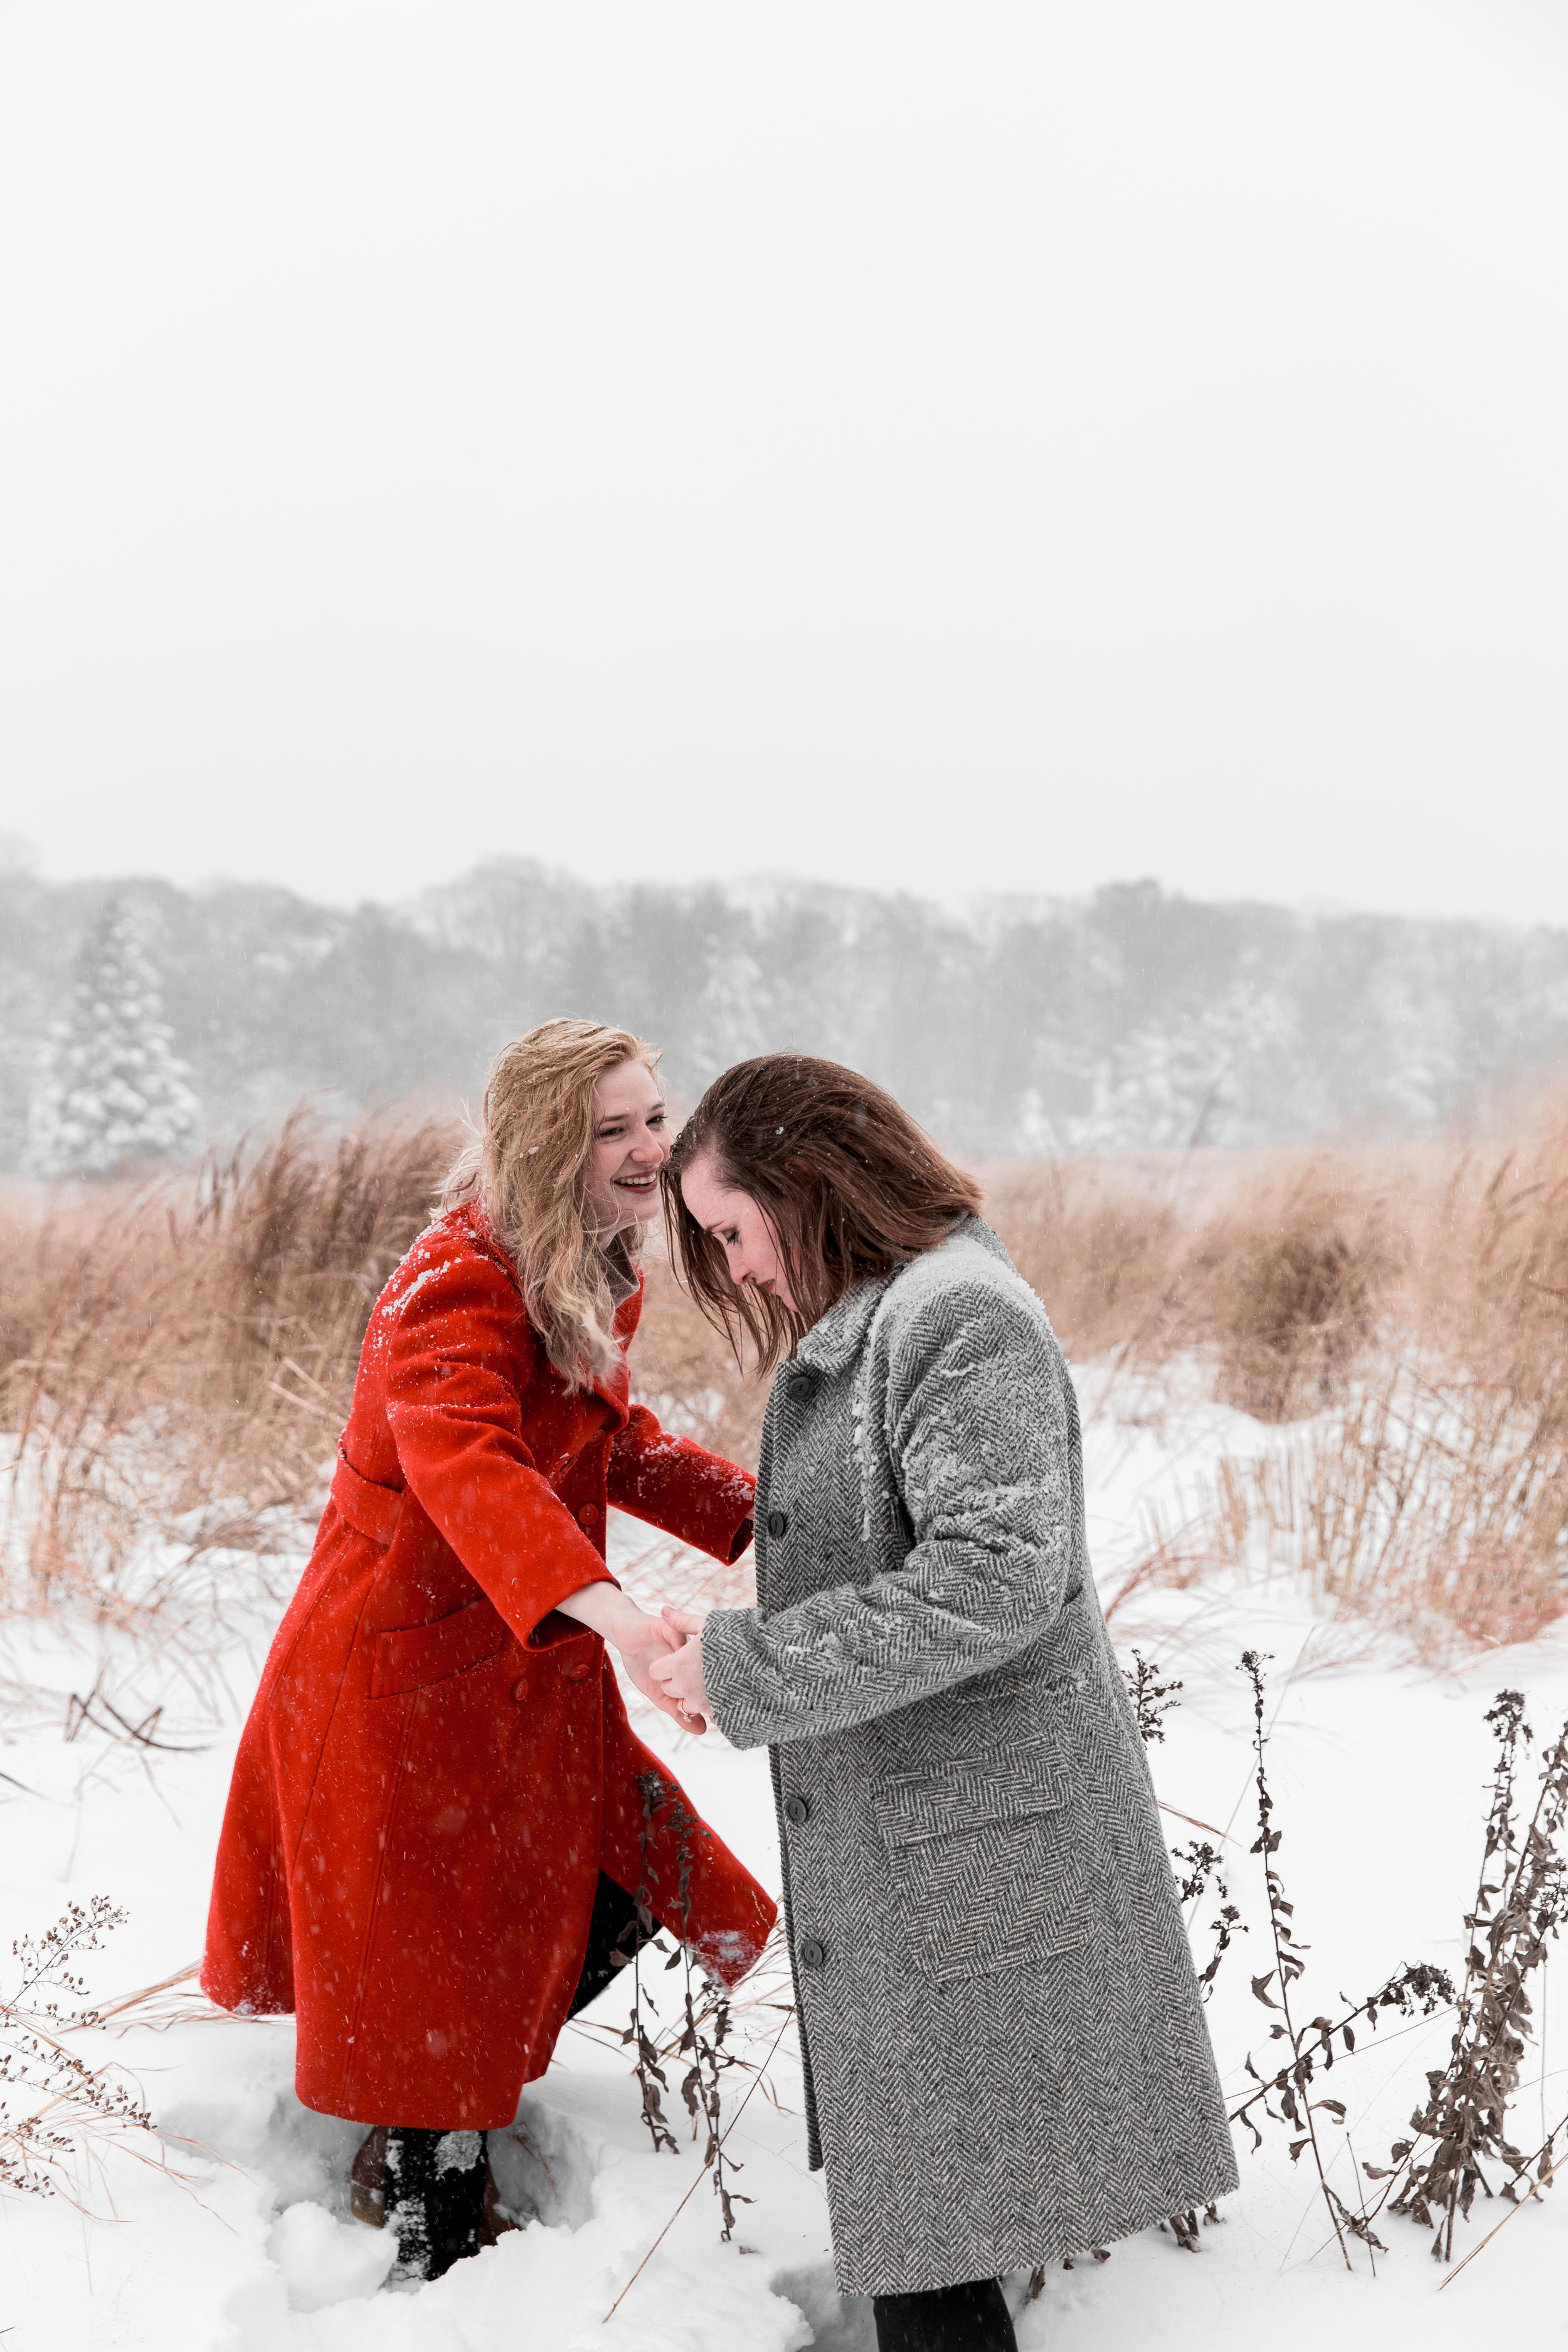 Brooklyn_Rachel_Engagement-1875.jpg